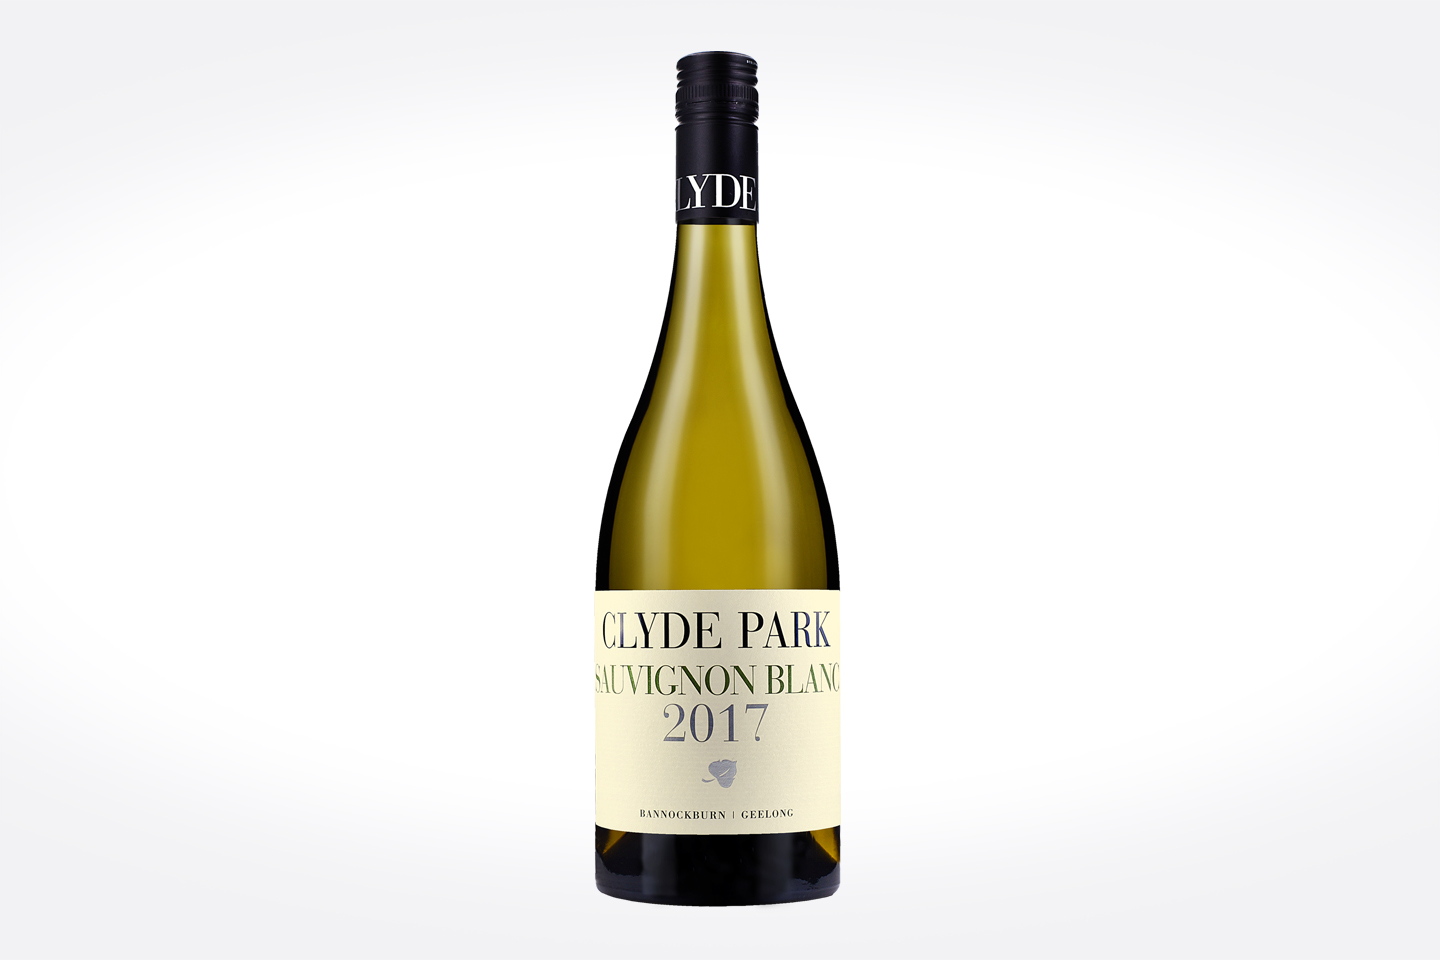 Wine Bottle Photography, Product Photography, Product Photography Melbourne